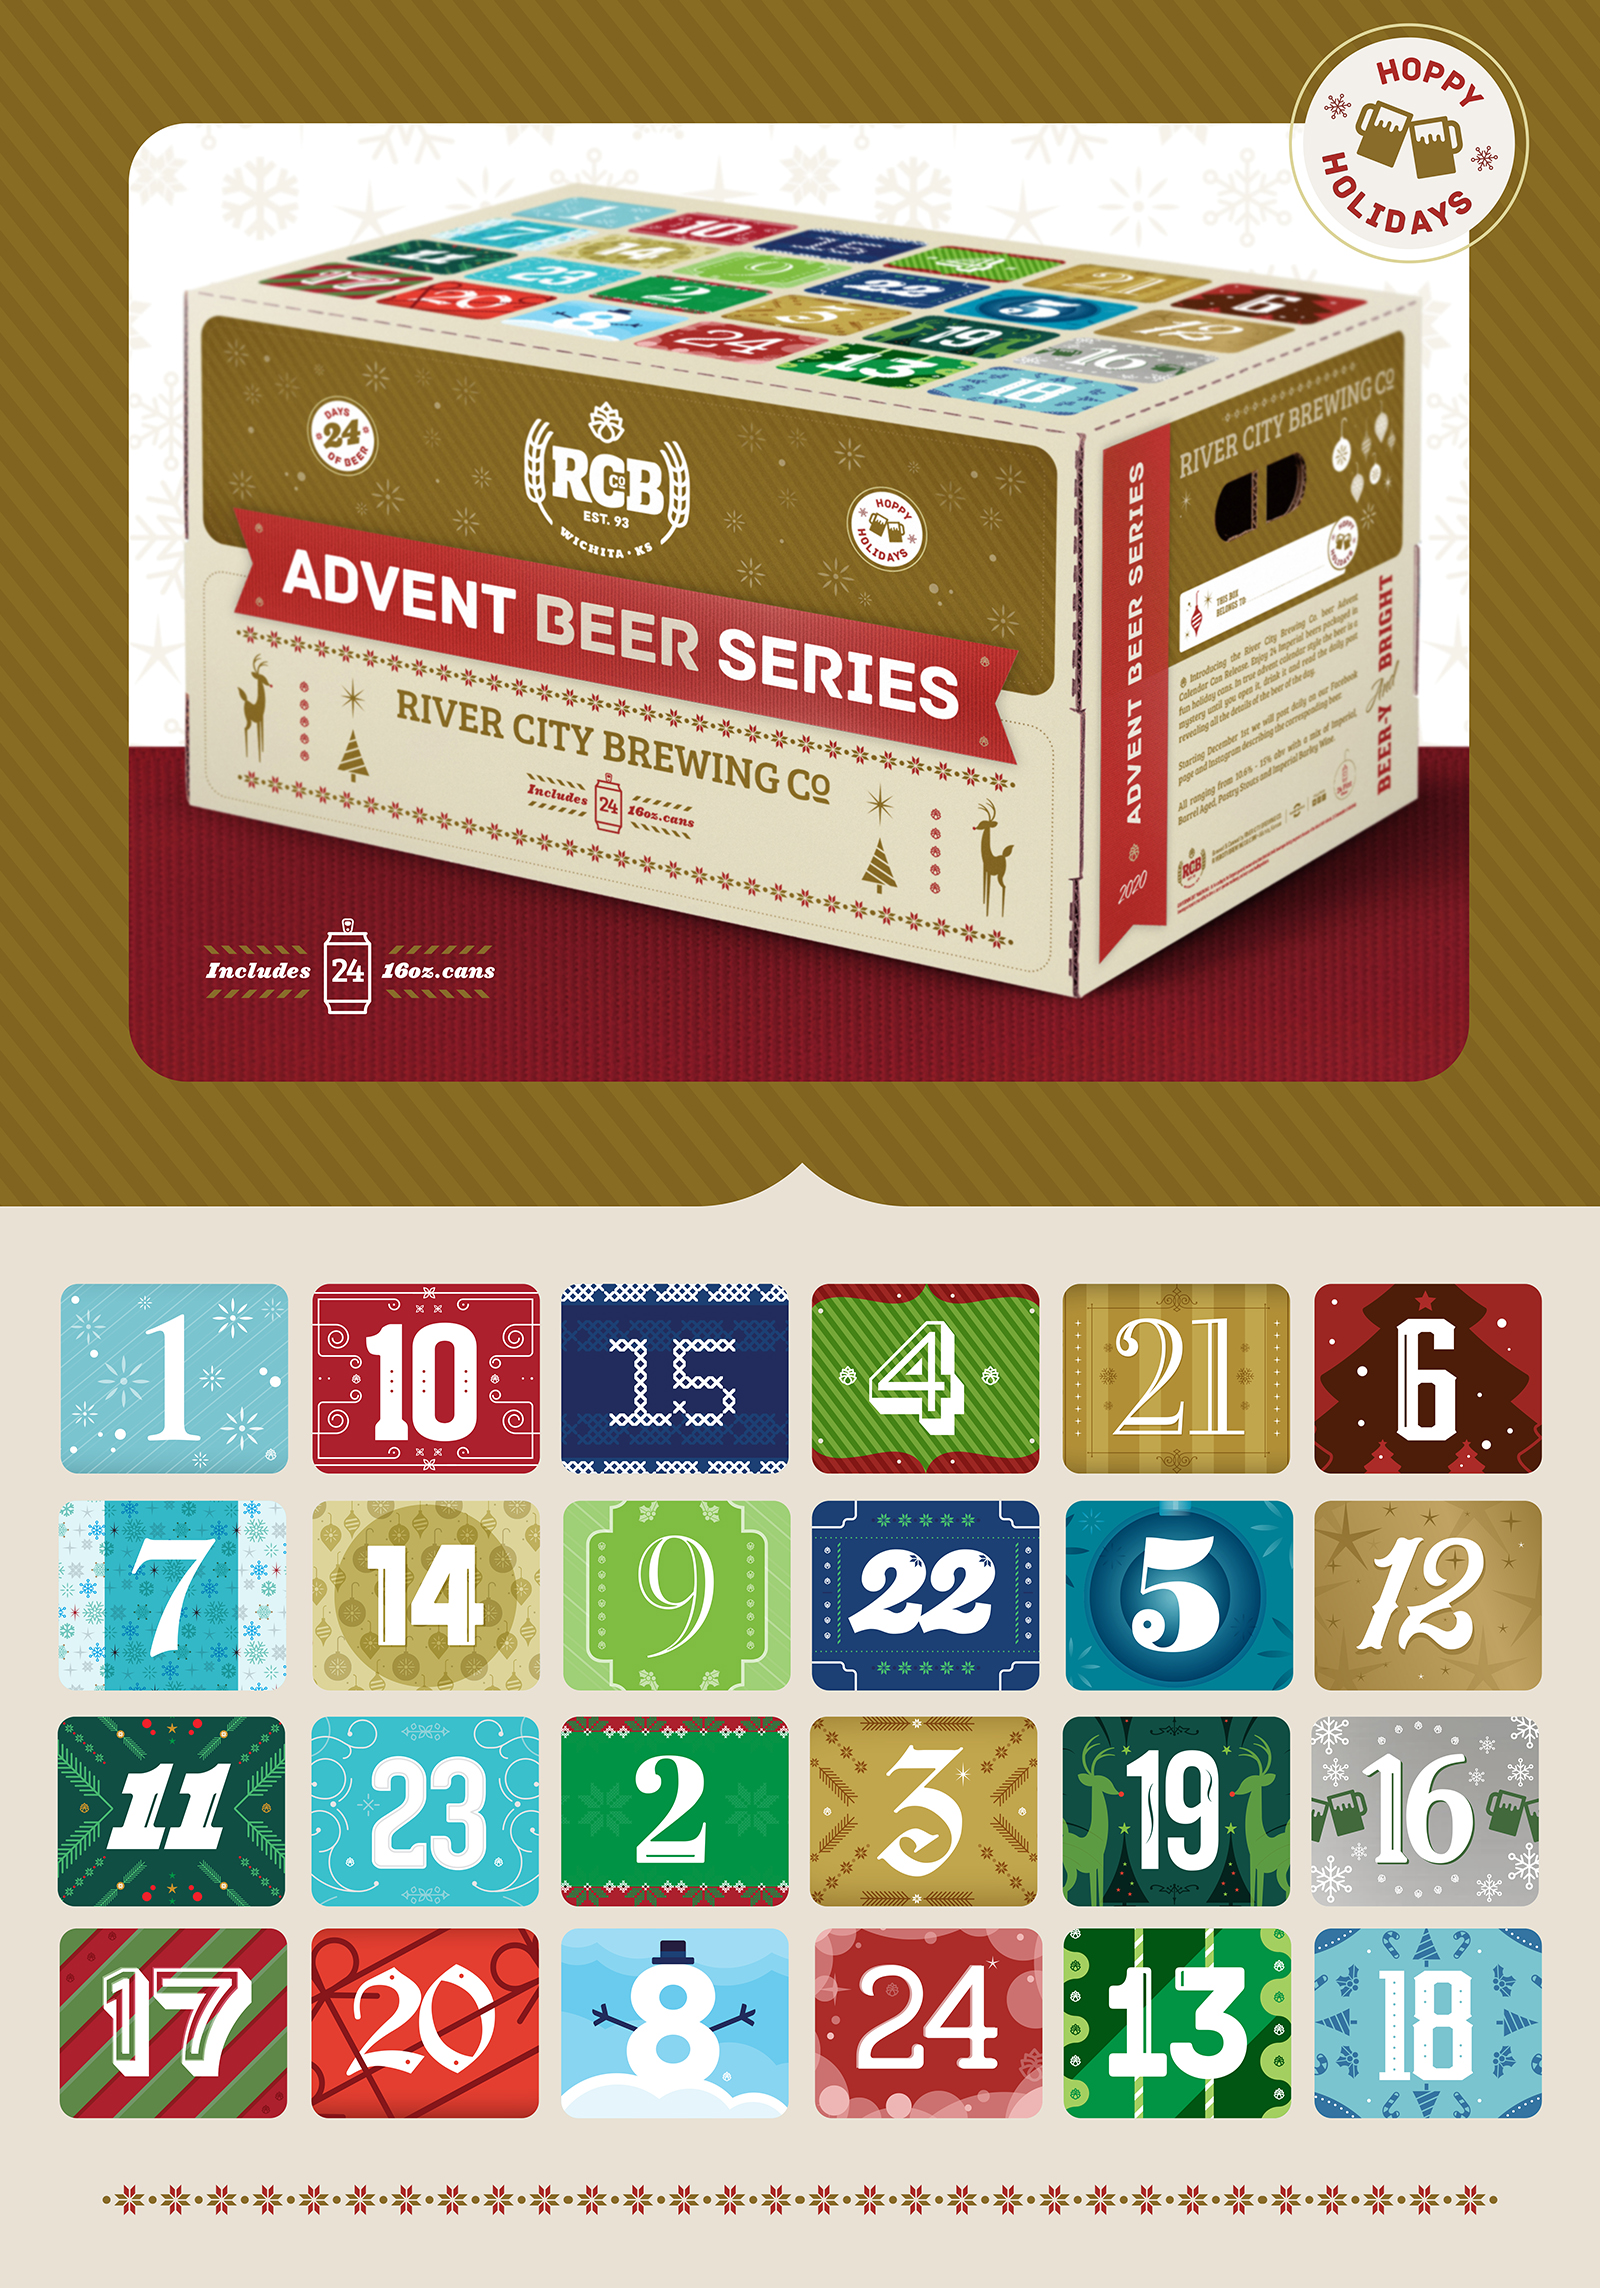 RCB Advent Beer Elements